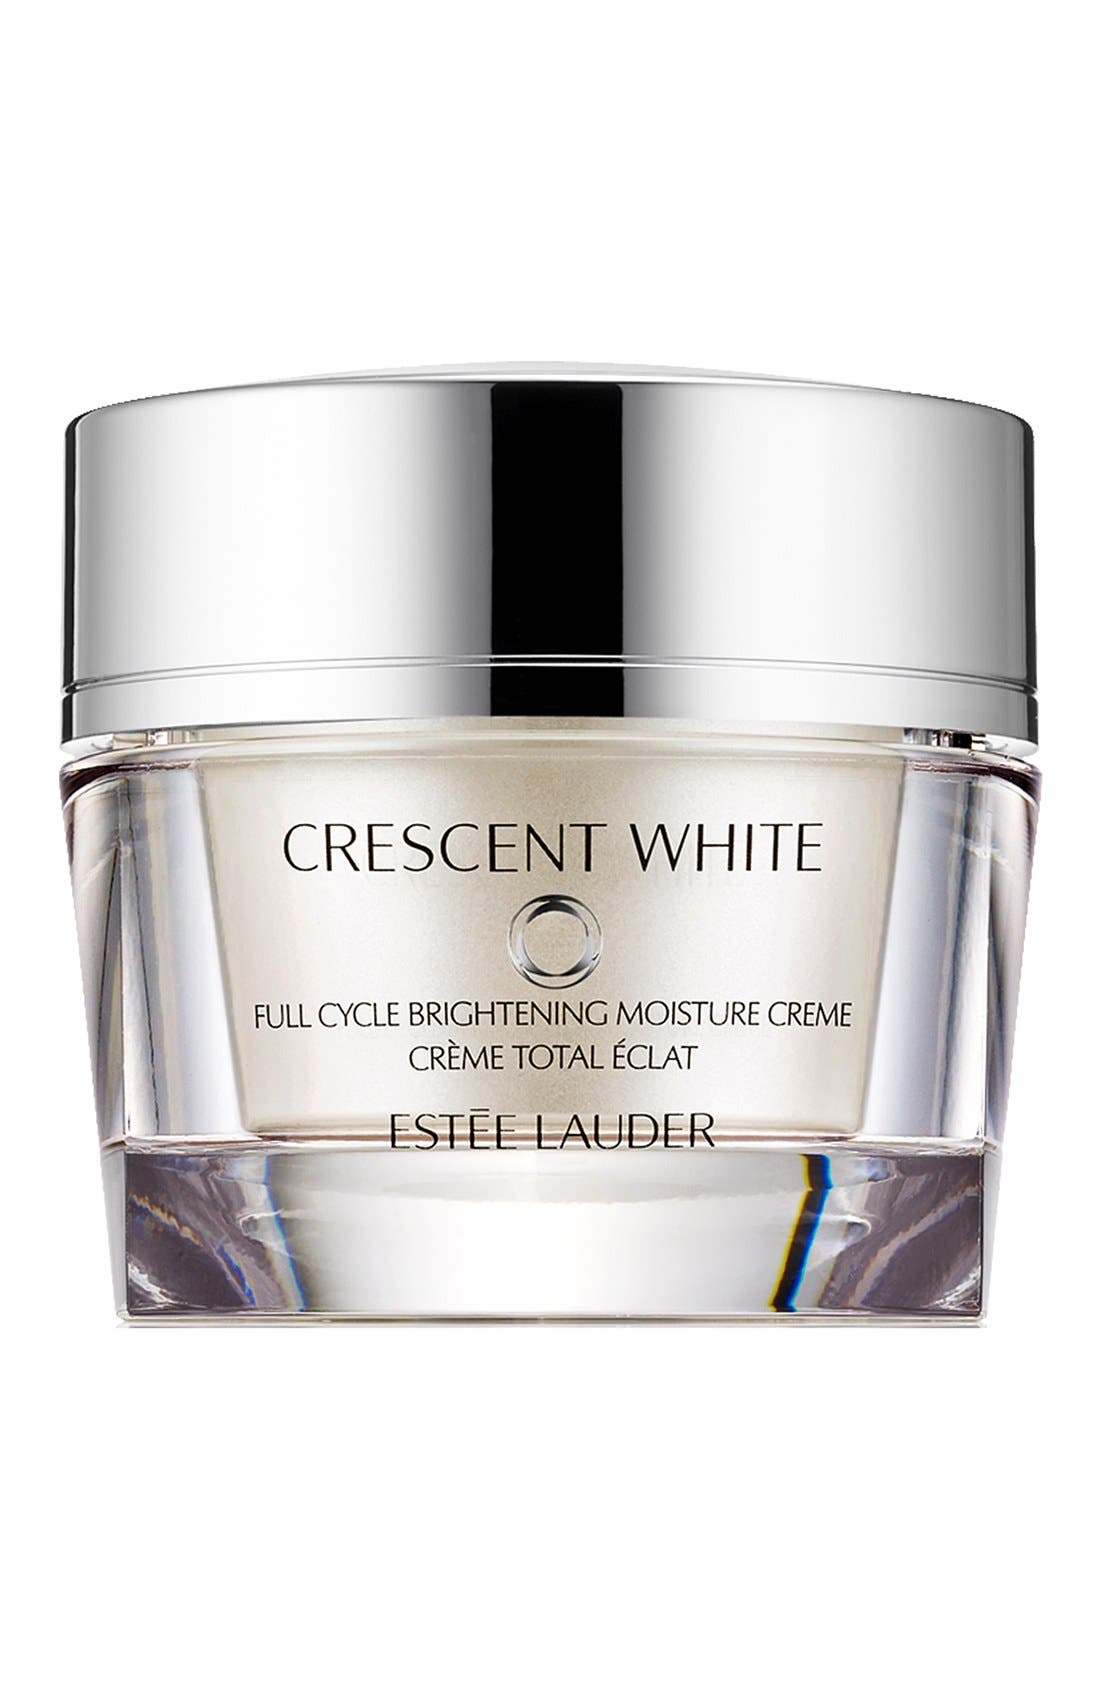 Crescent White Full Cycle Brightening Moisture Créme,                         Main,                         color, 000